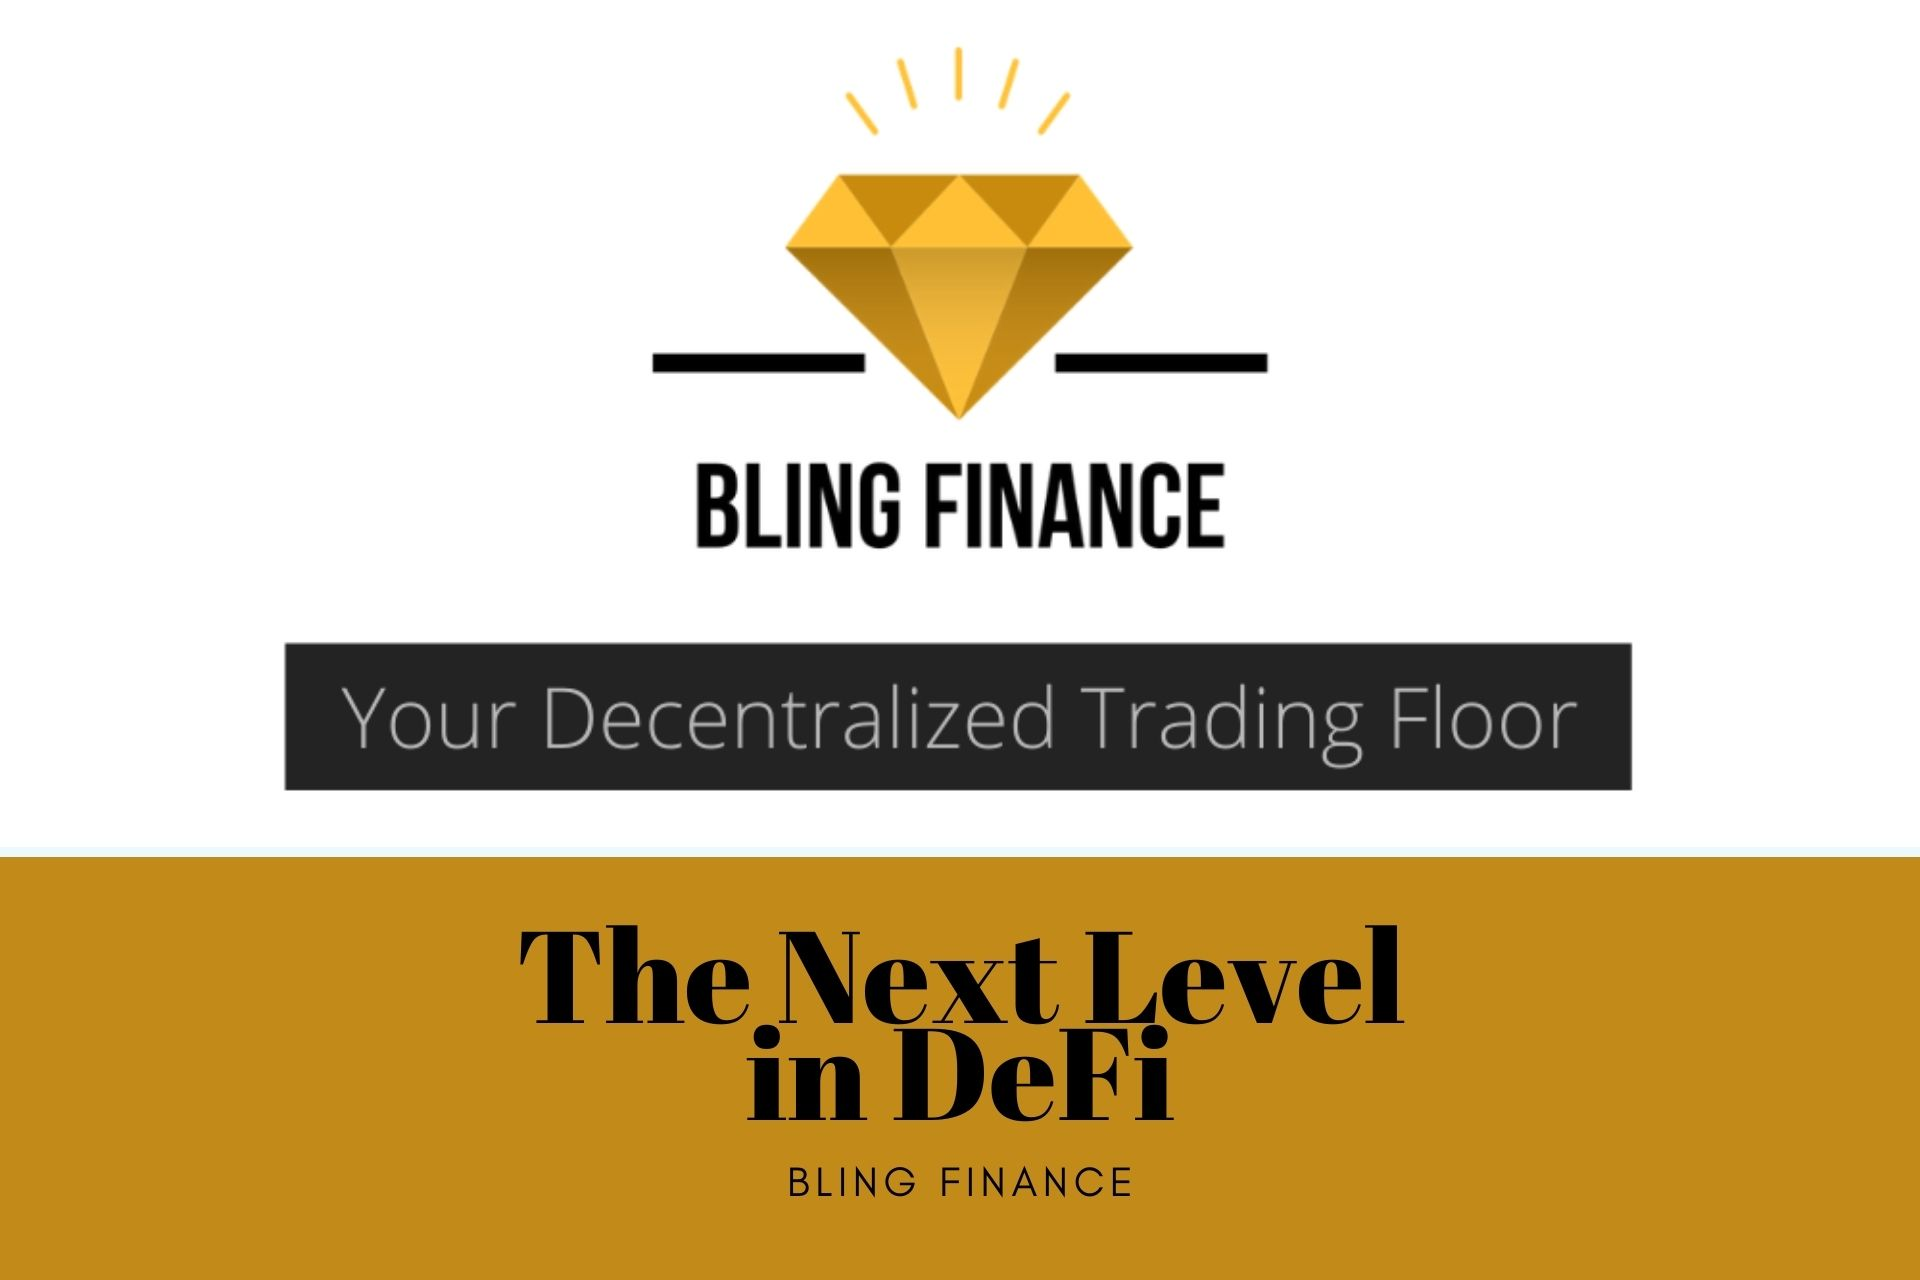 BlingFinance – Taking Decentralization to The Next Level in DeFi